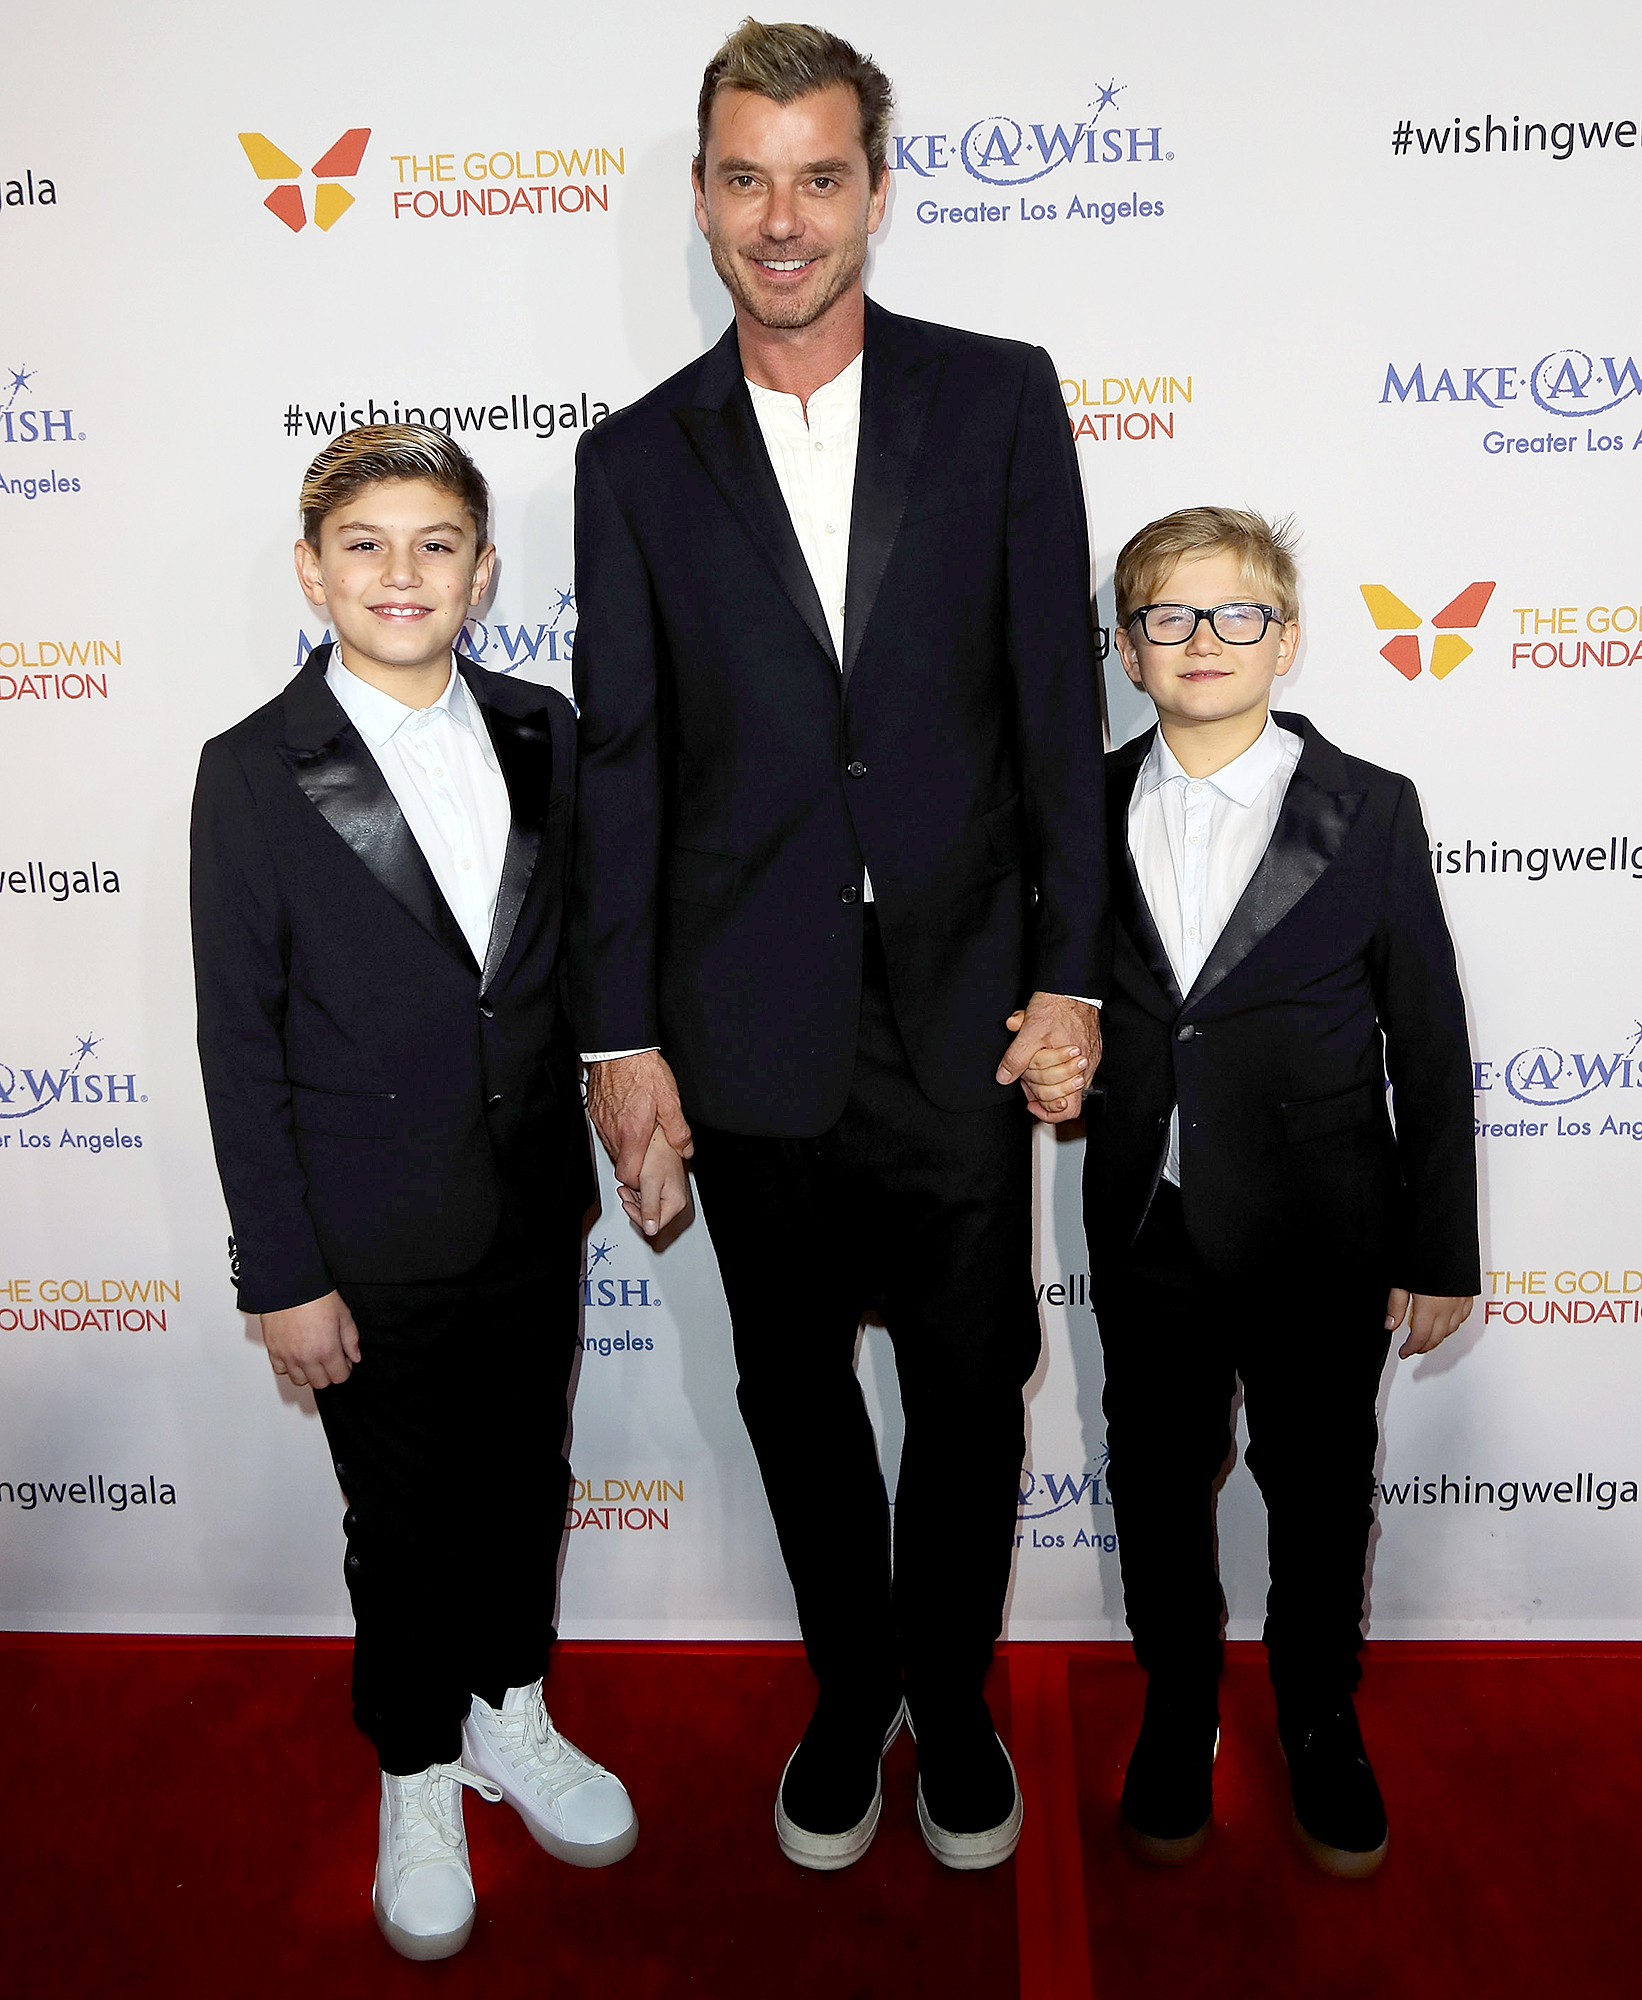 Gavin-Rossdale-Kingston-Rossdale-Zuma-Rossdale - Gavin Rossdale and sons Kingston Rossdale and Zuma Nesta Rock Rossdale attend the 4th Annual Wishing Well Winter Gala at the Hollywood Palladium on December 7, 2016 in Los Angeles, California.